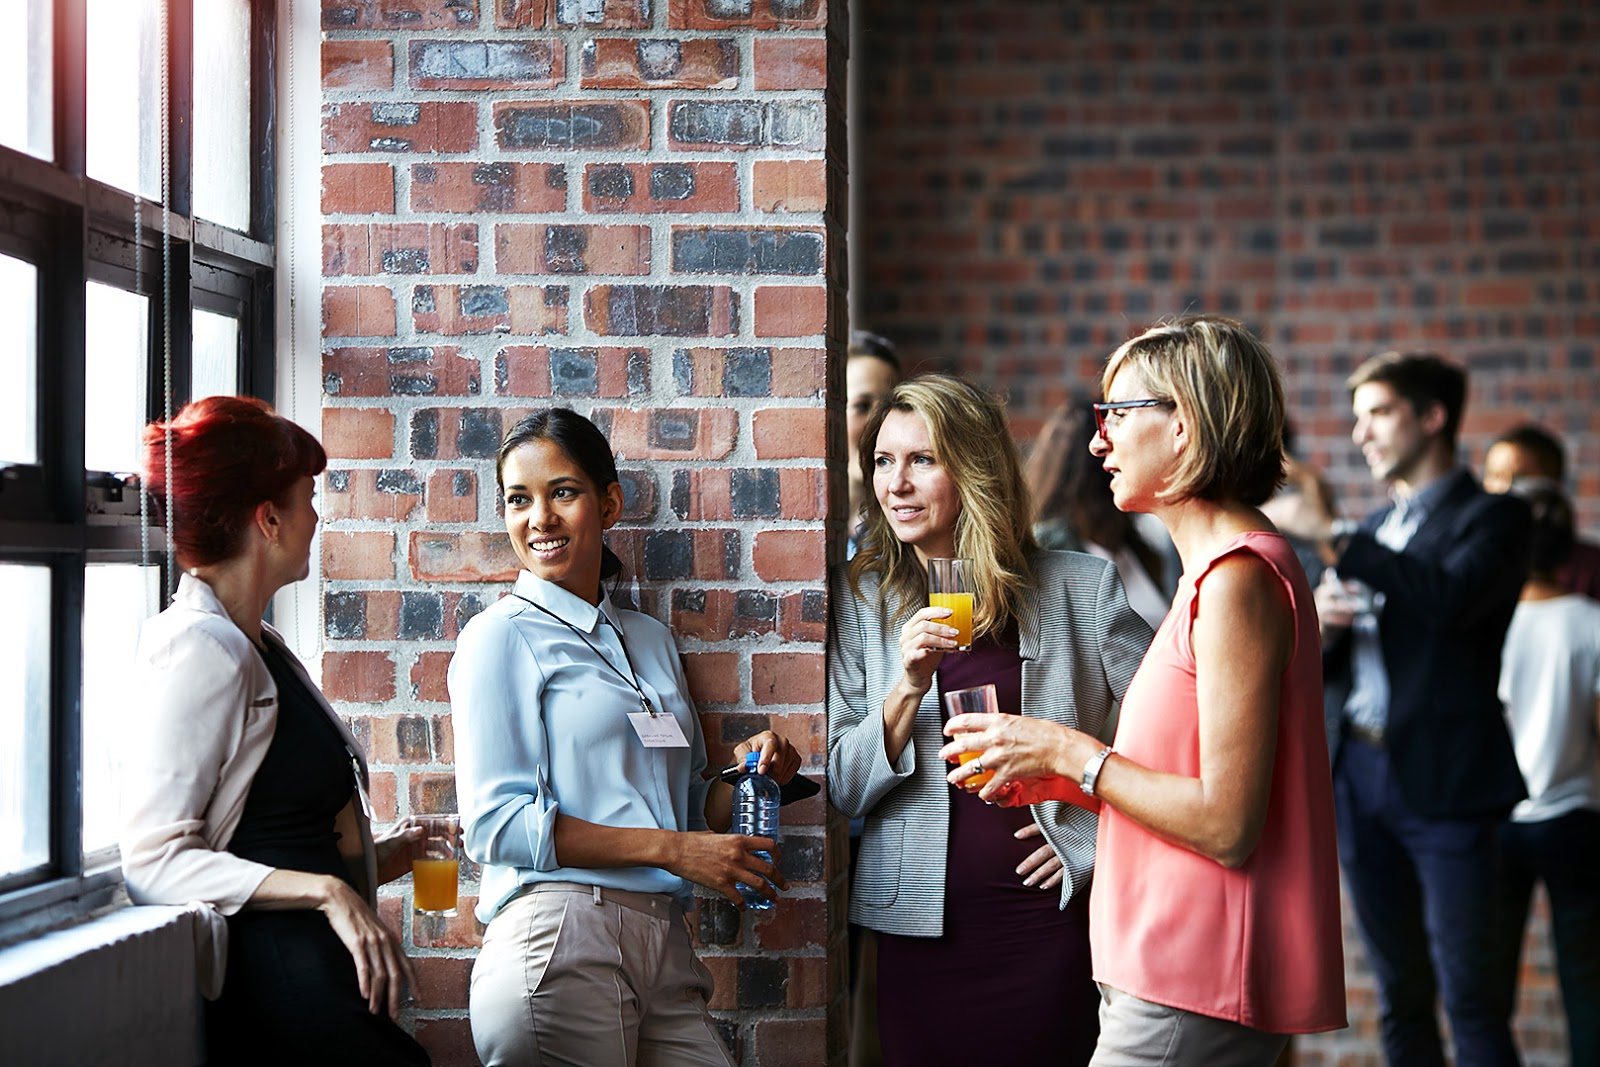 25 Icebreakers to Kick Off Any Event - Brought to you by Natwest